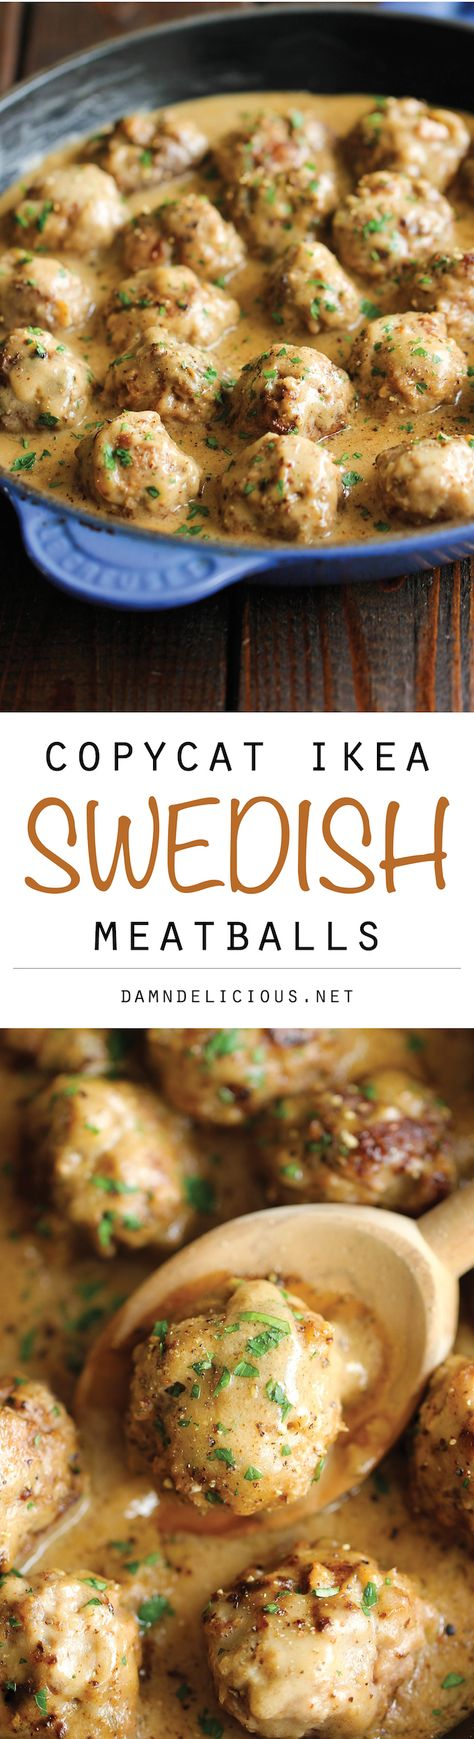 Swedish Meatballs - Nothing beats homemade meatballs smothered in a creamy gravy sauce, and they taste much better than the IKEA version!